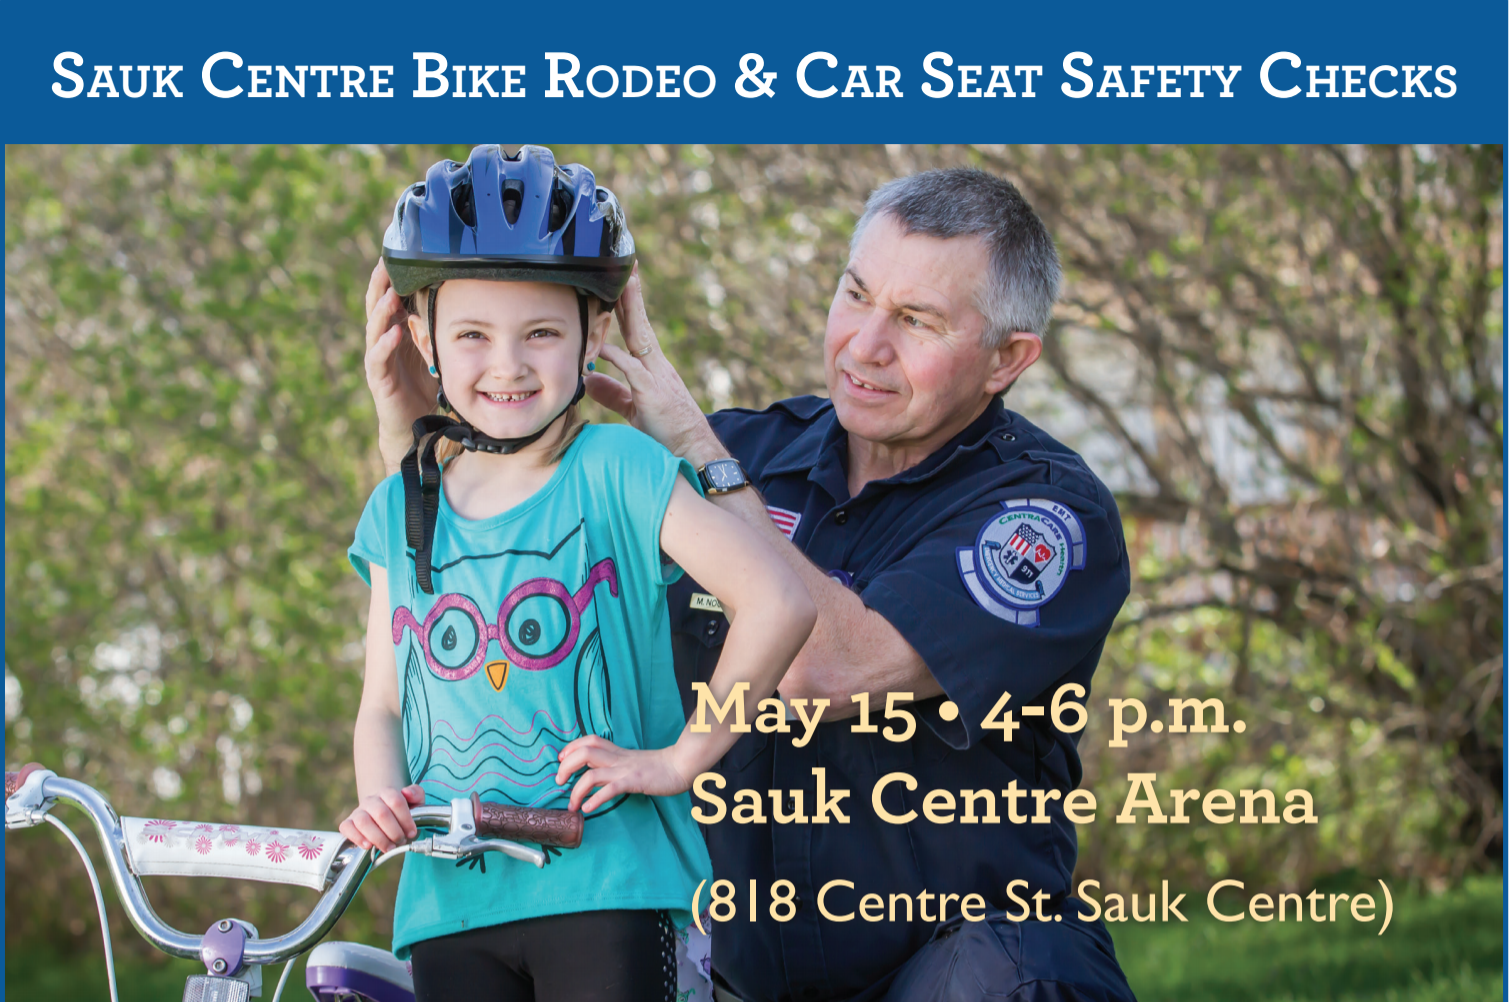 SC Bike Rodeo & Car Seat Safelty Check